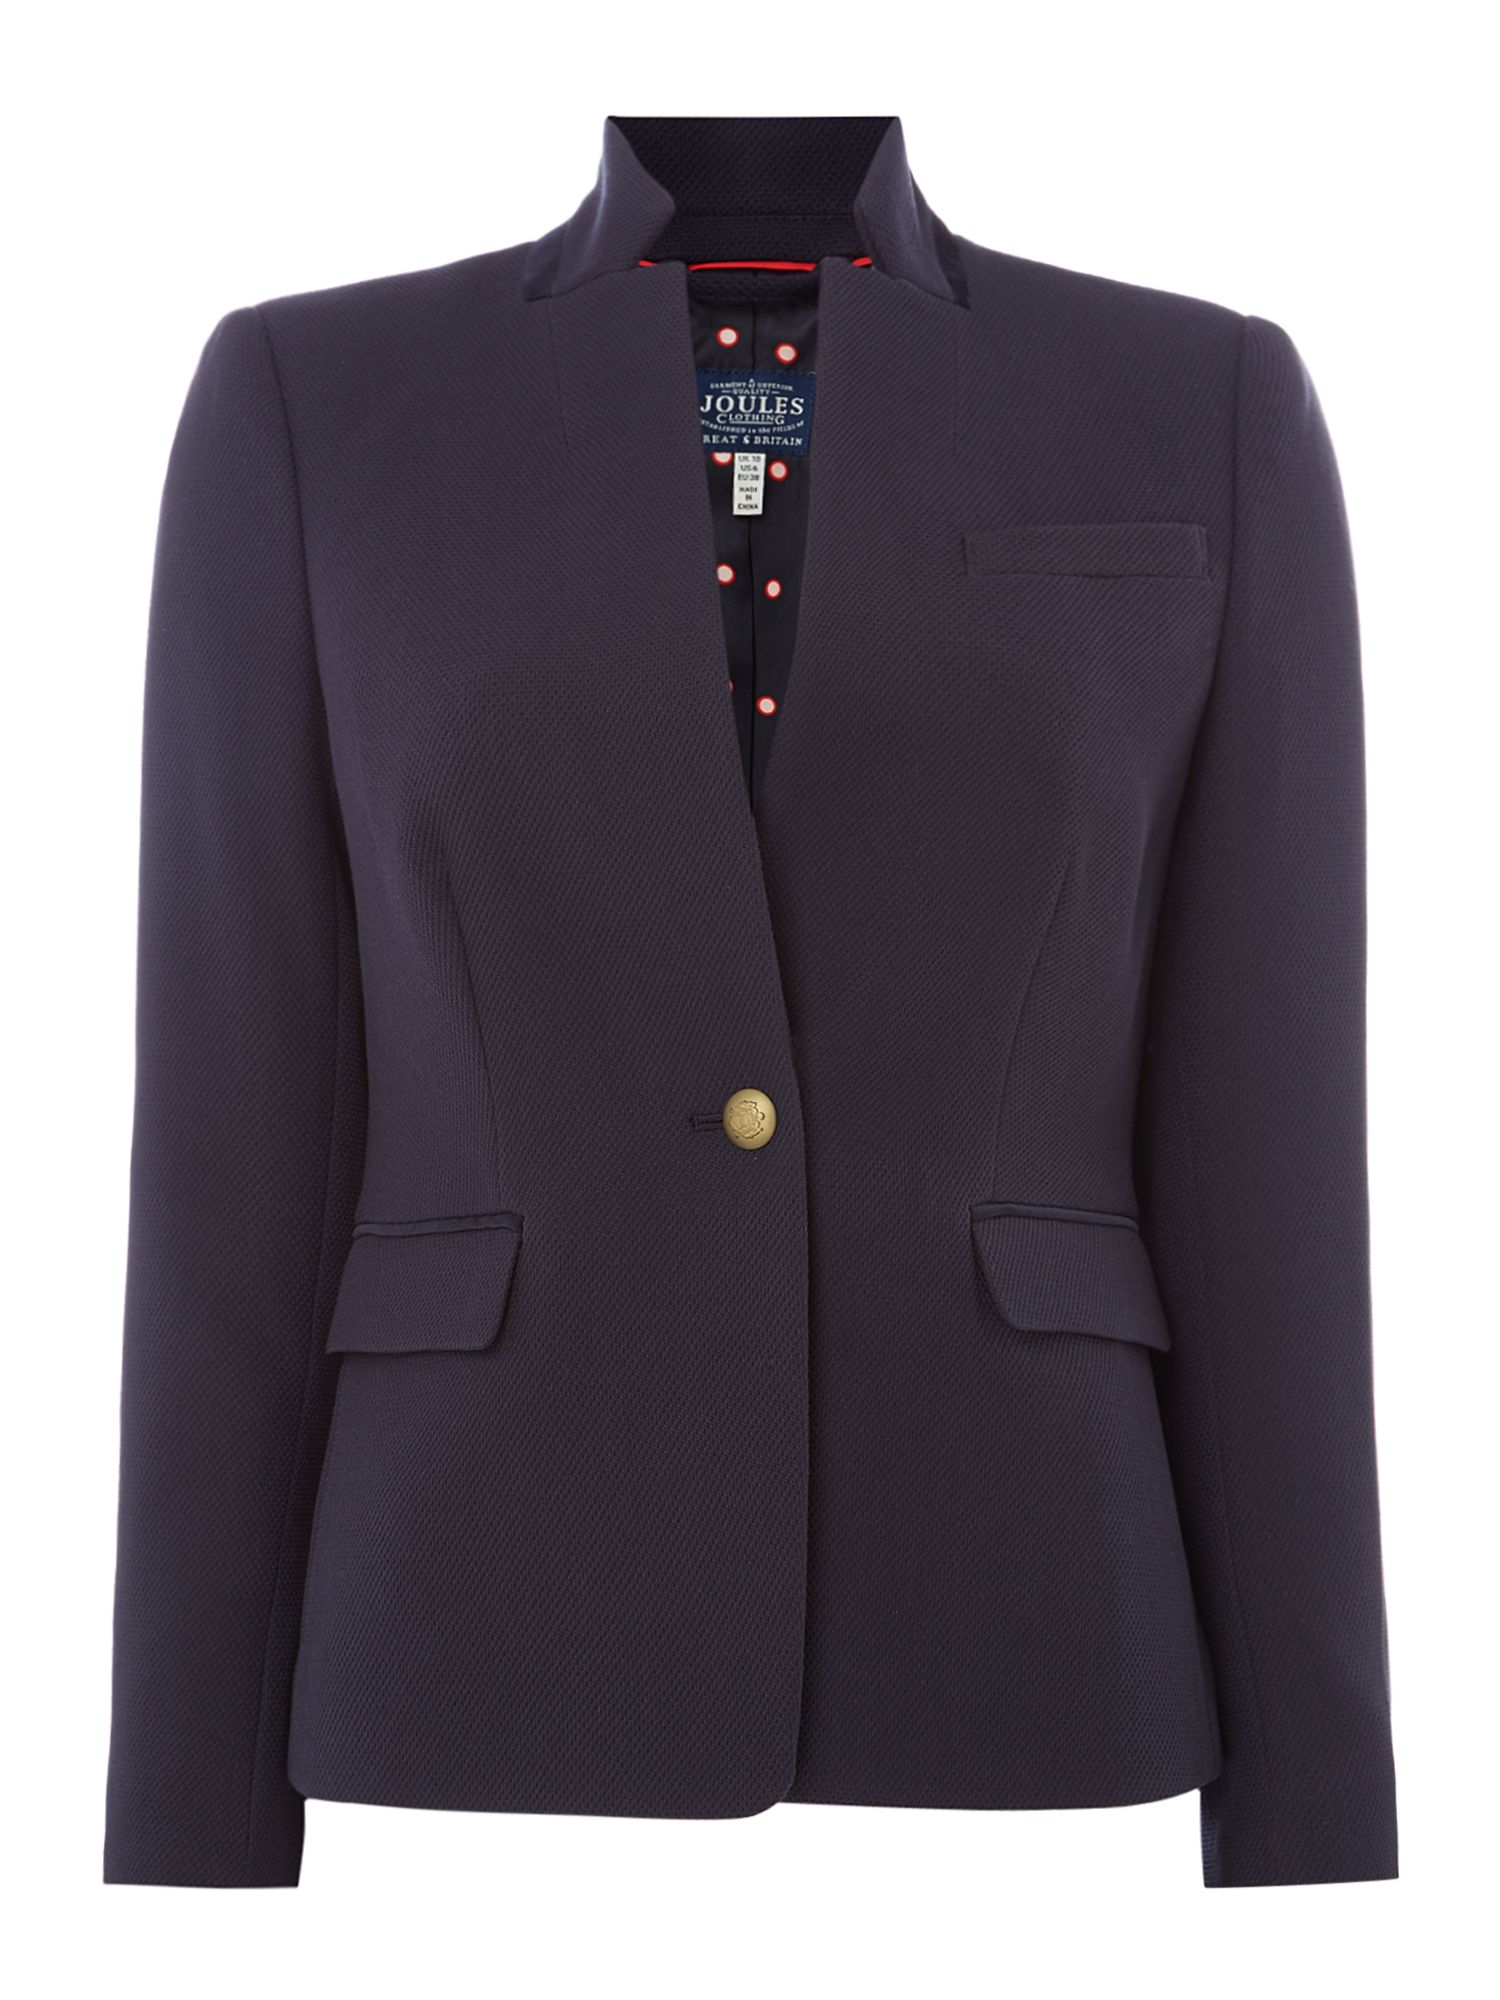 Joules Pique Long Sleeves Blazer, French Blue